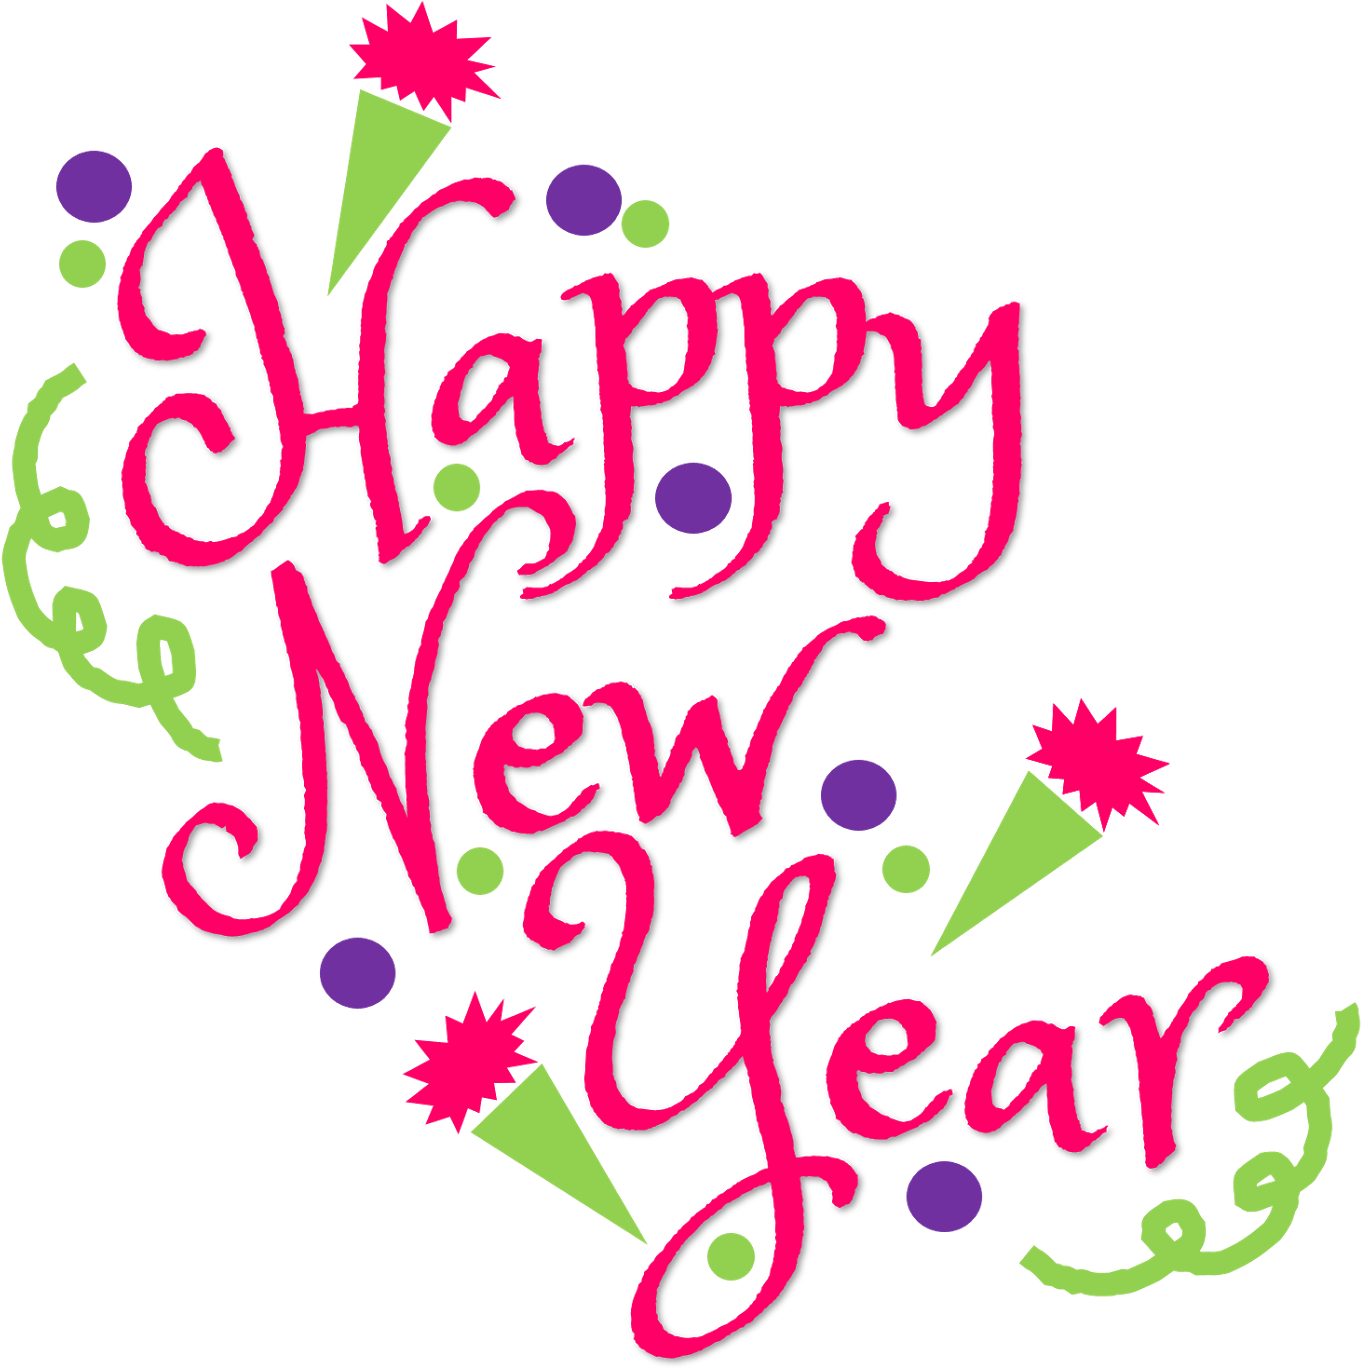 christian clipart free new year 2019 png background transparent cartoon jing fm year 2019 png background